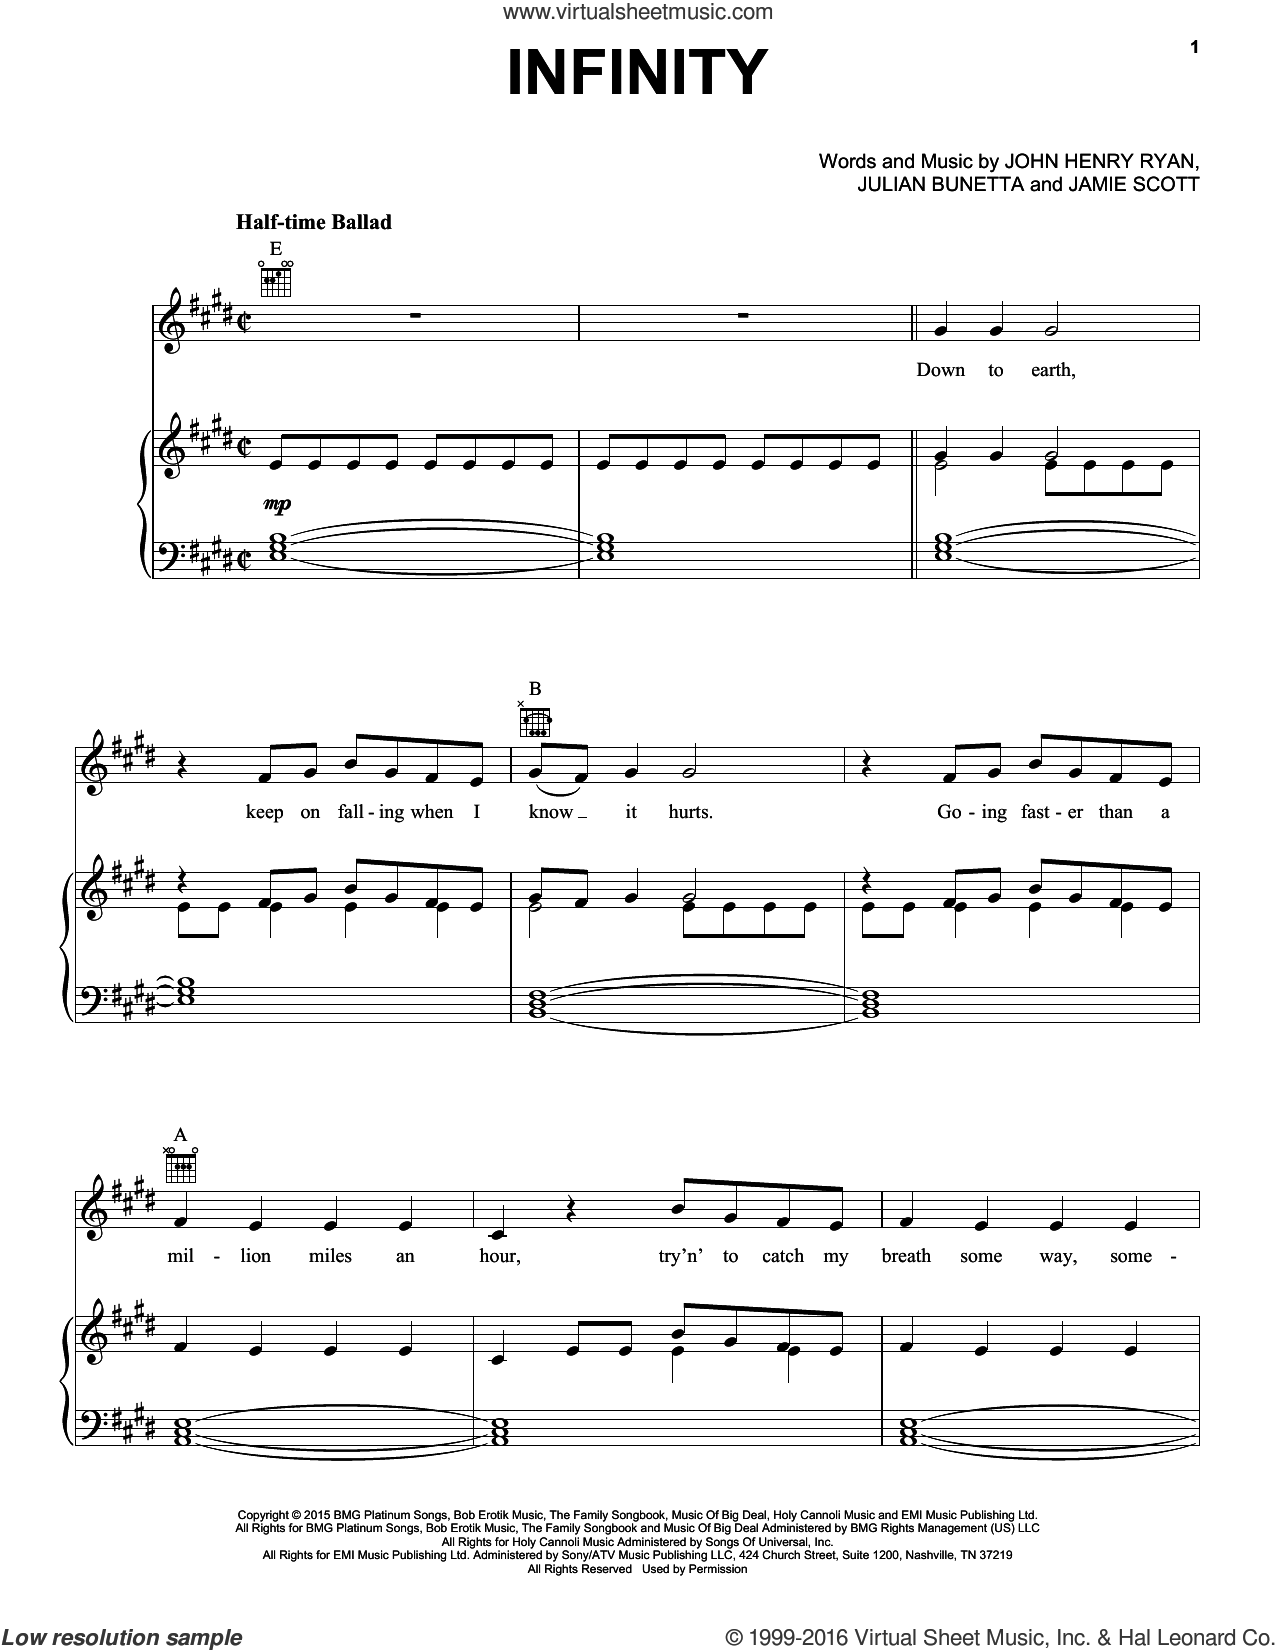 Infinity sheet music for voice, piano or guitar by One Direction, Jamie Scott, John Henry Ryan and Julian Bunetta, intermediate skill level